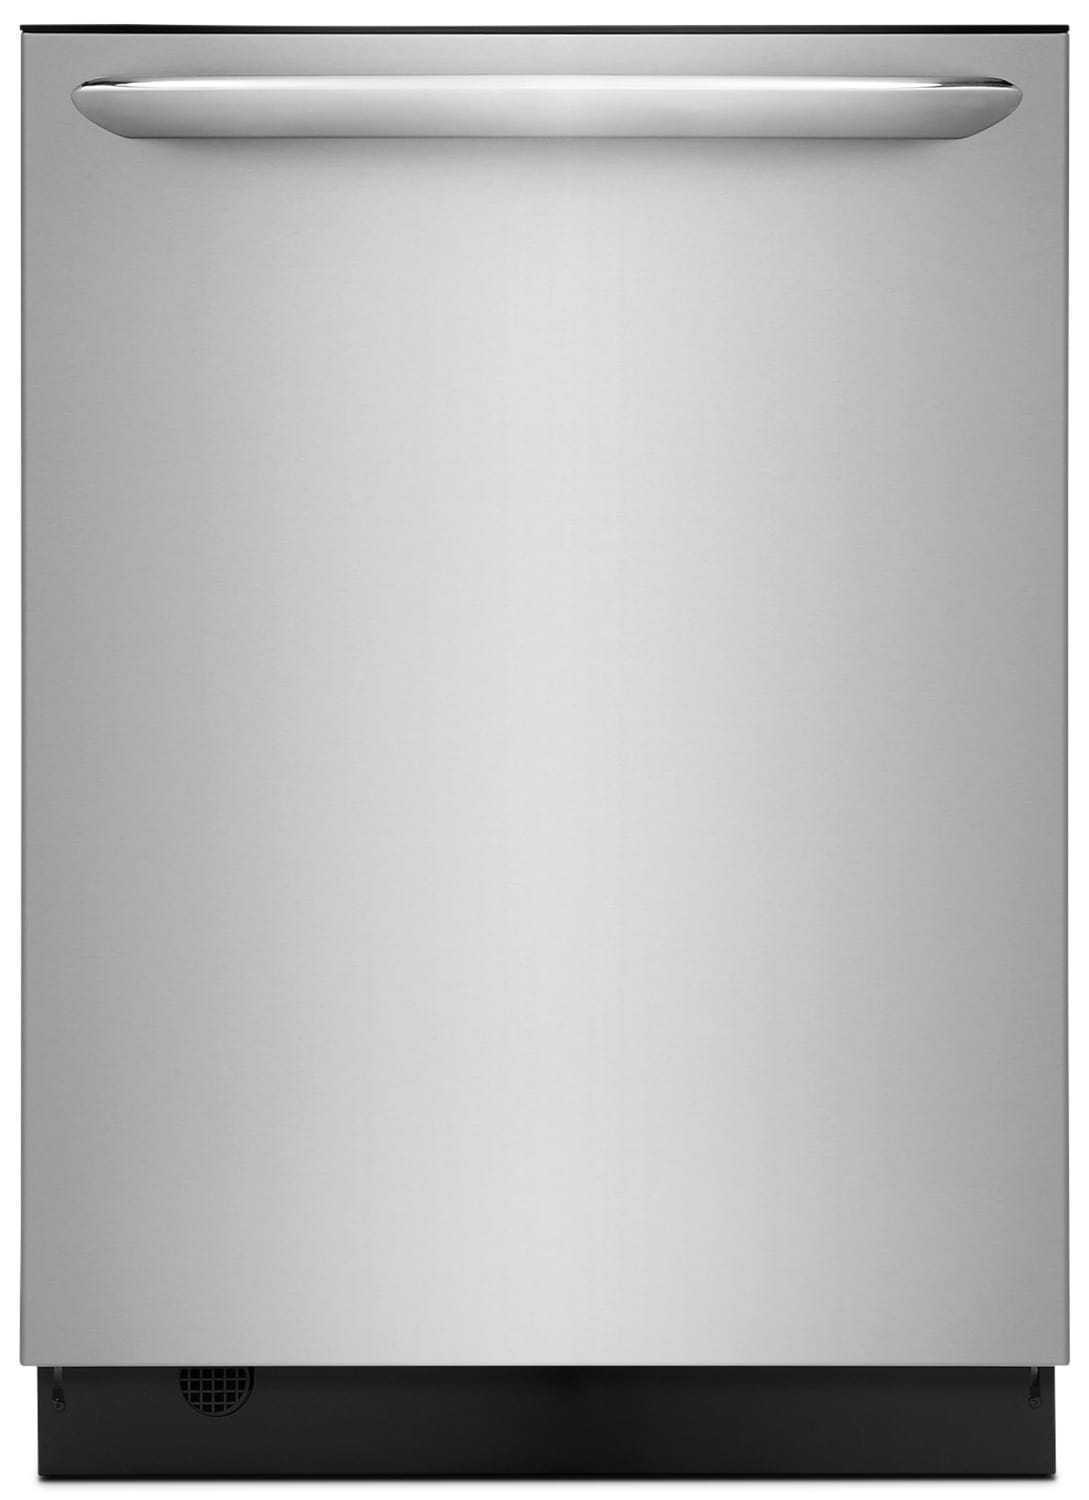 "Frigidaire Gallery Stainless Steel 24"" Dishwasher - FGID2479SF"